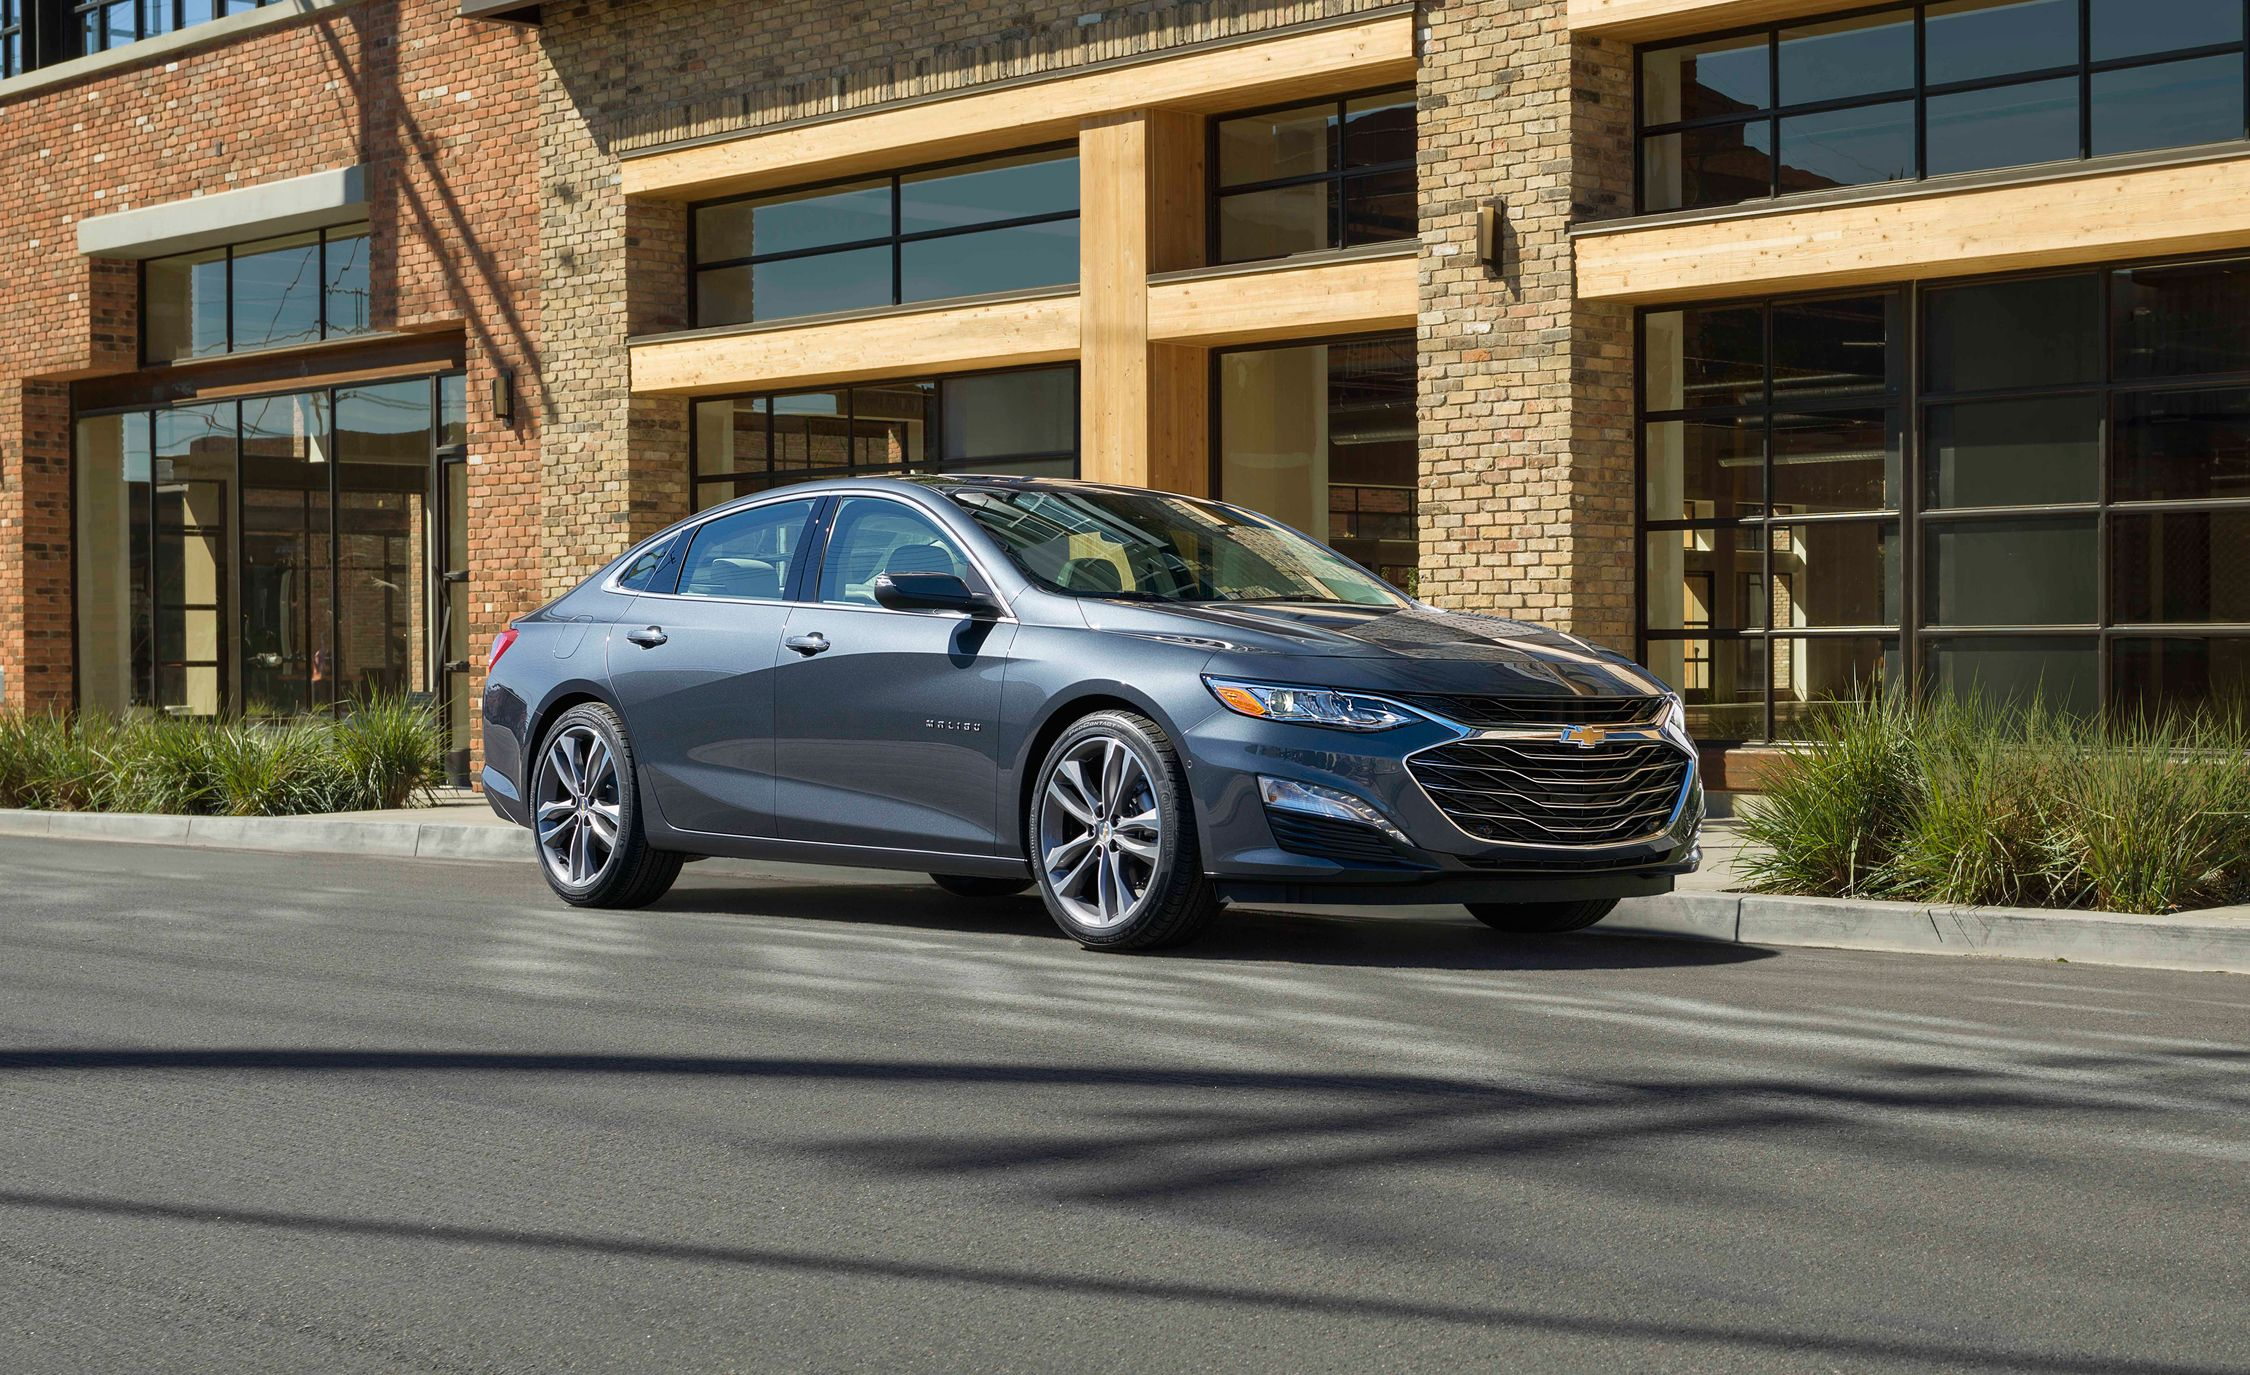 2016 Chevrolet Malibu LT 1 5 liter Test Review